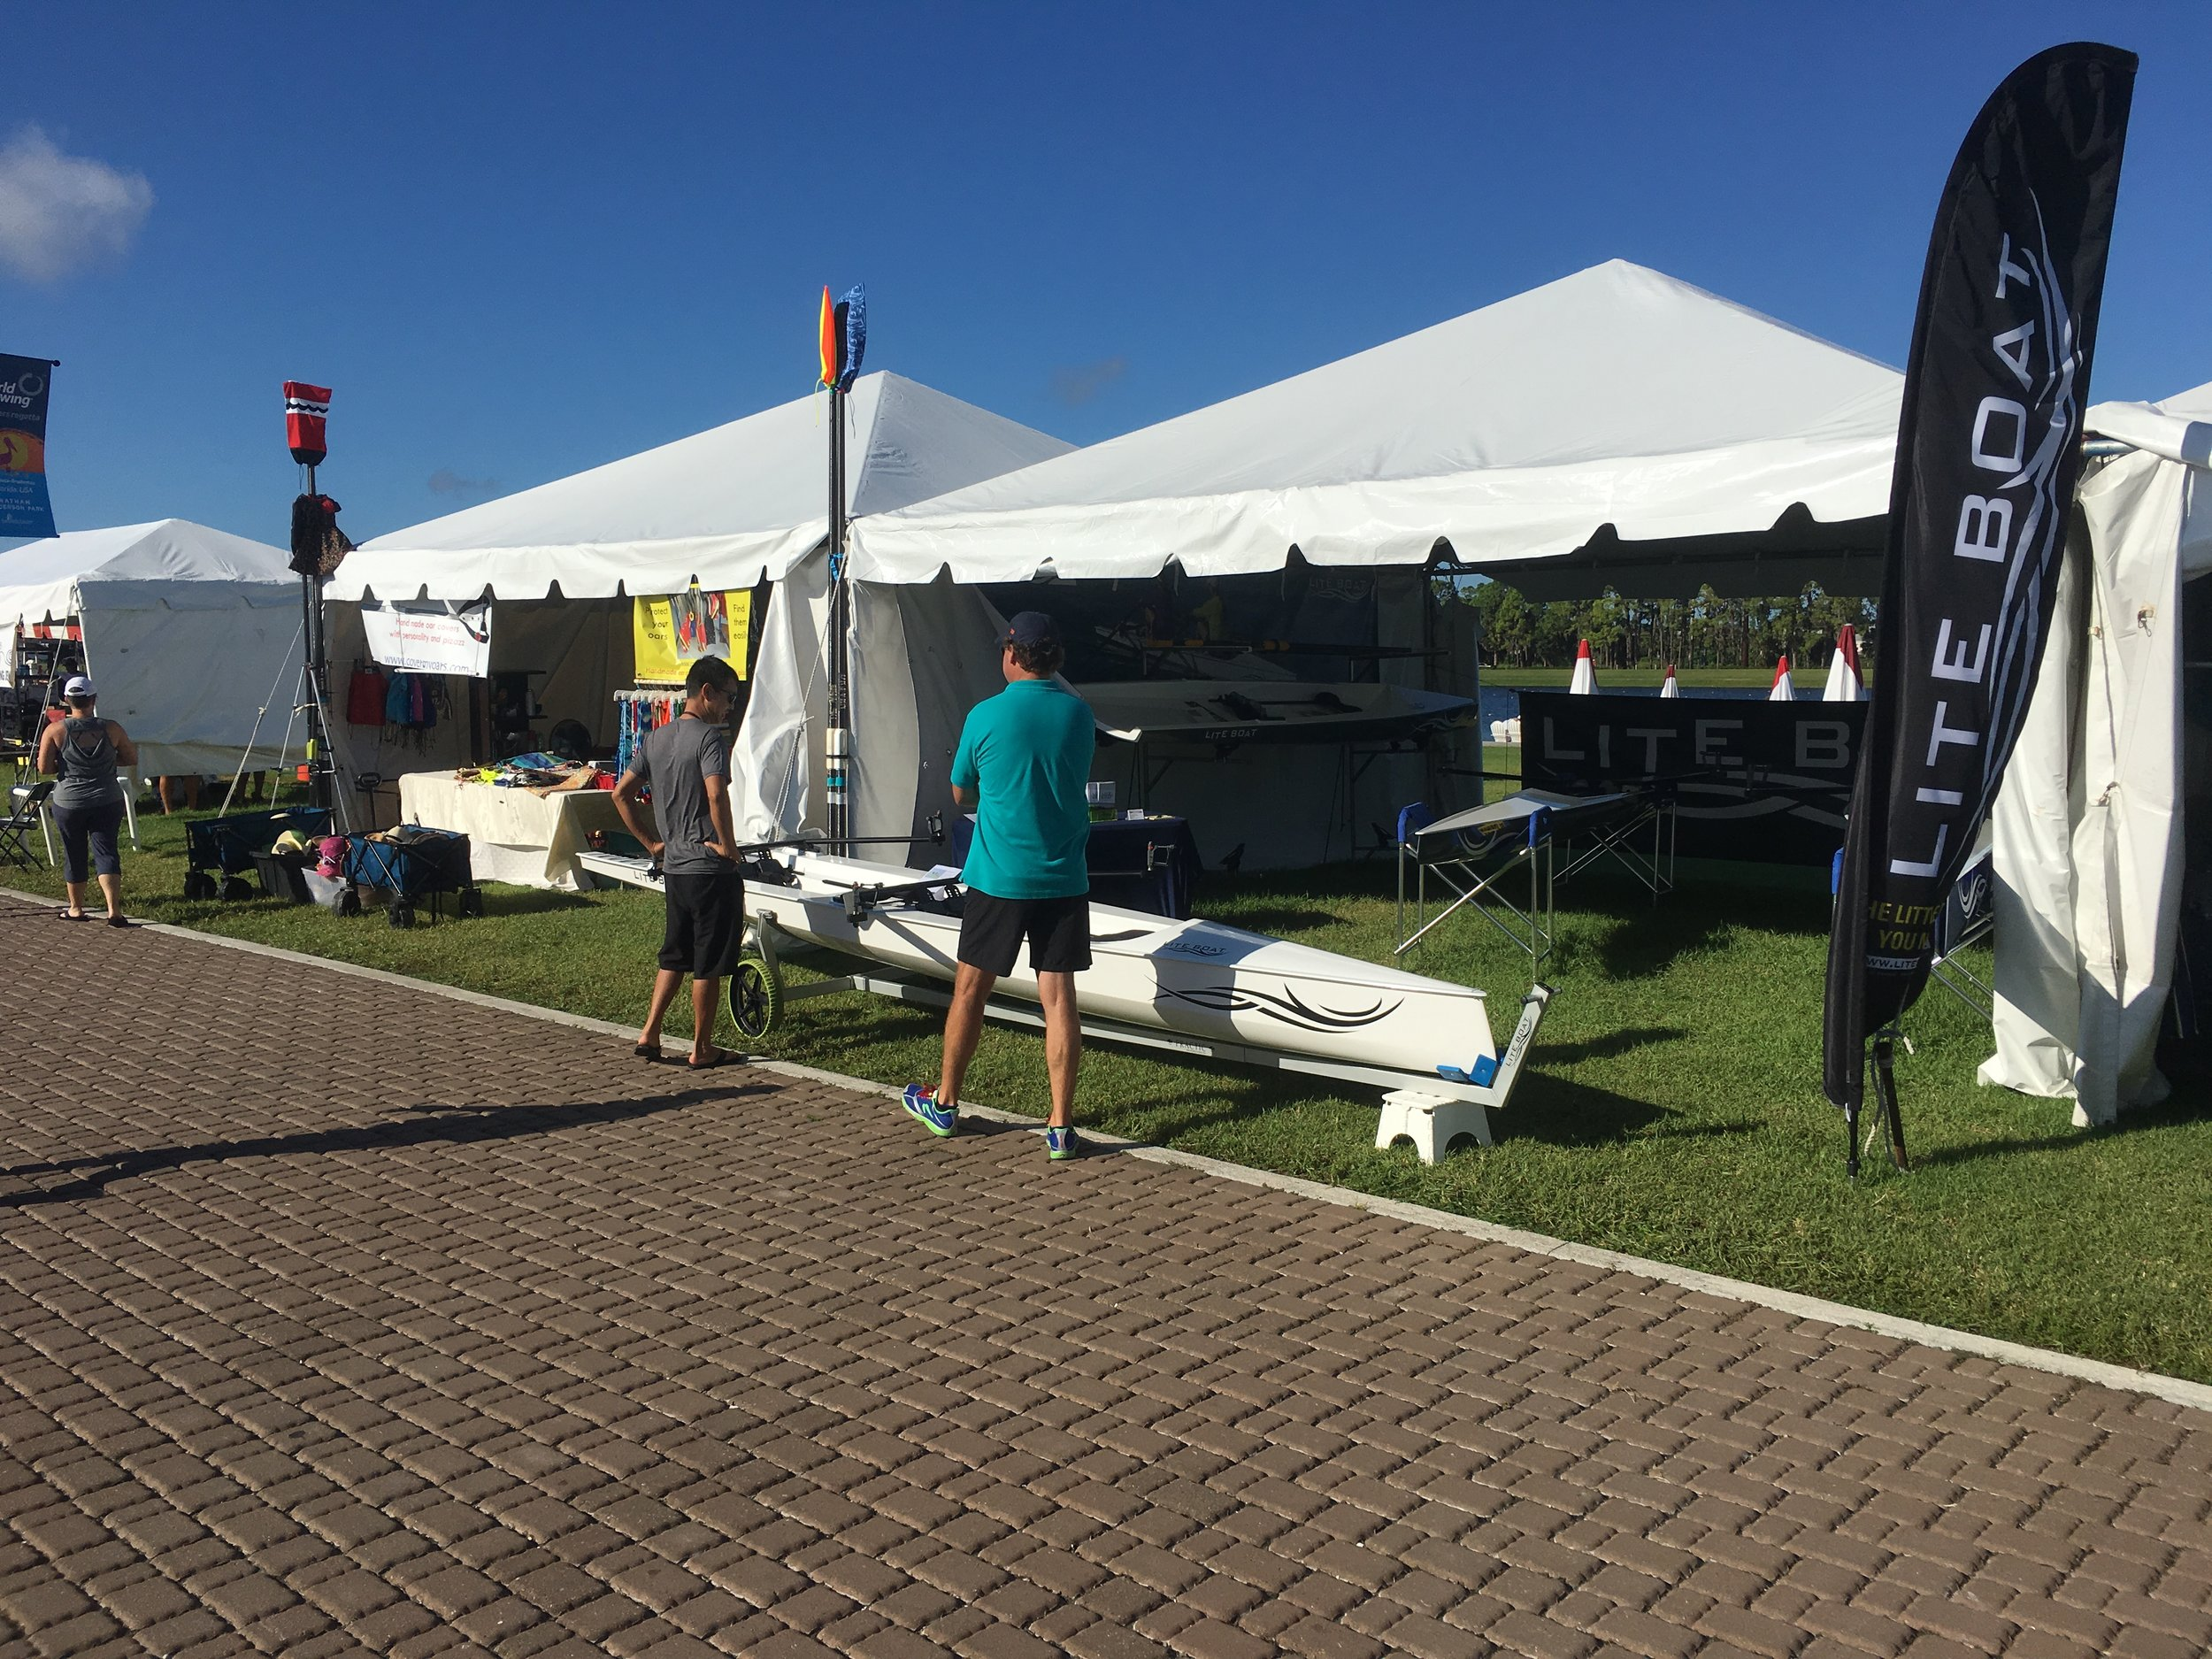 World Rowing Masters Regatta - We had a great time at the 2018 World Rowing Masters Regatta, met lots of nice people in the world of rowing.